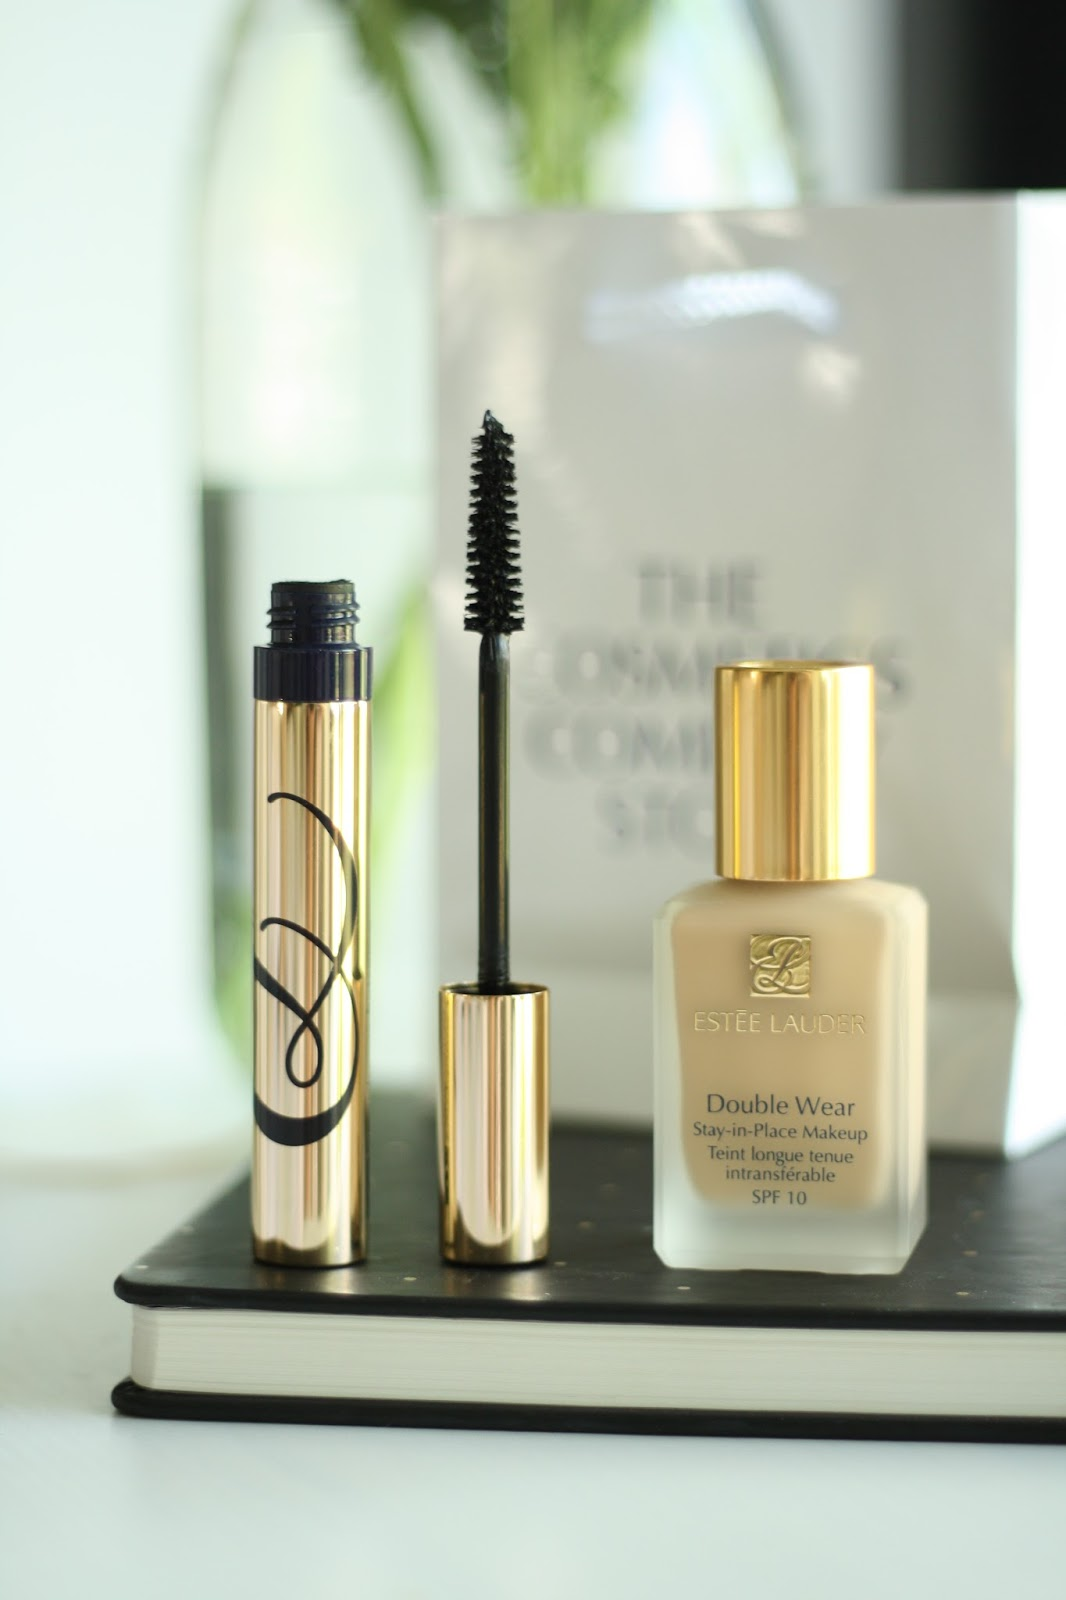 ESTEE LAUDER MAKEUP FROM CCO